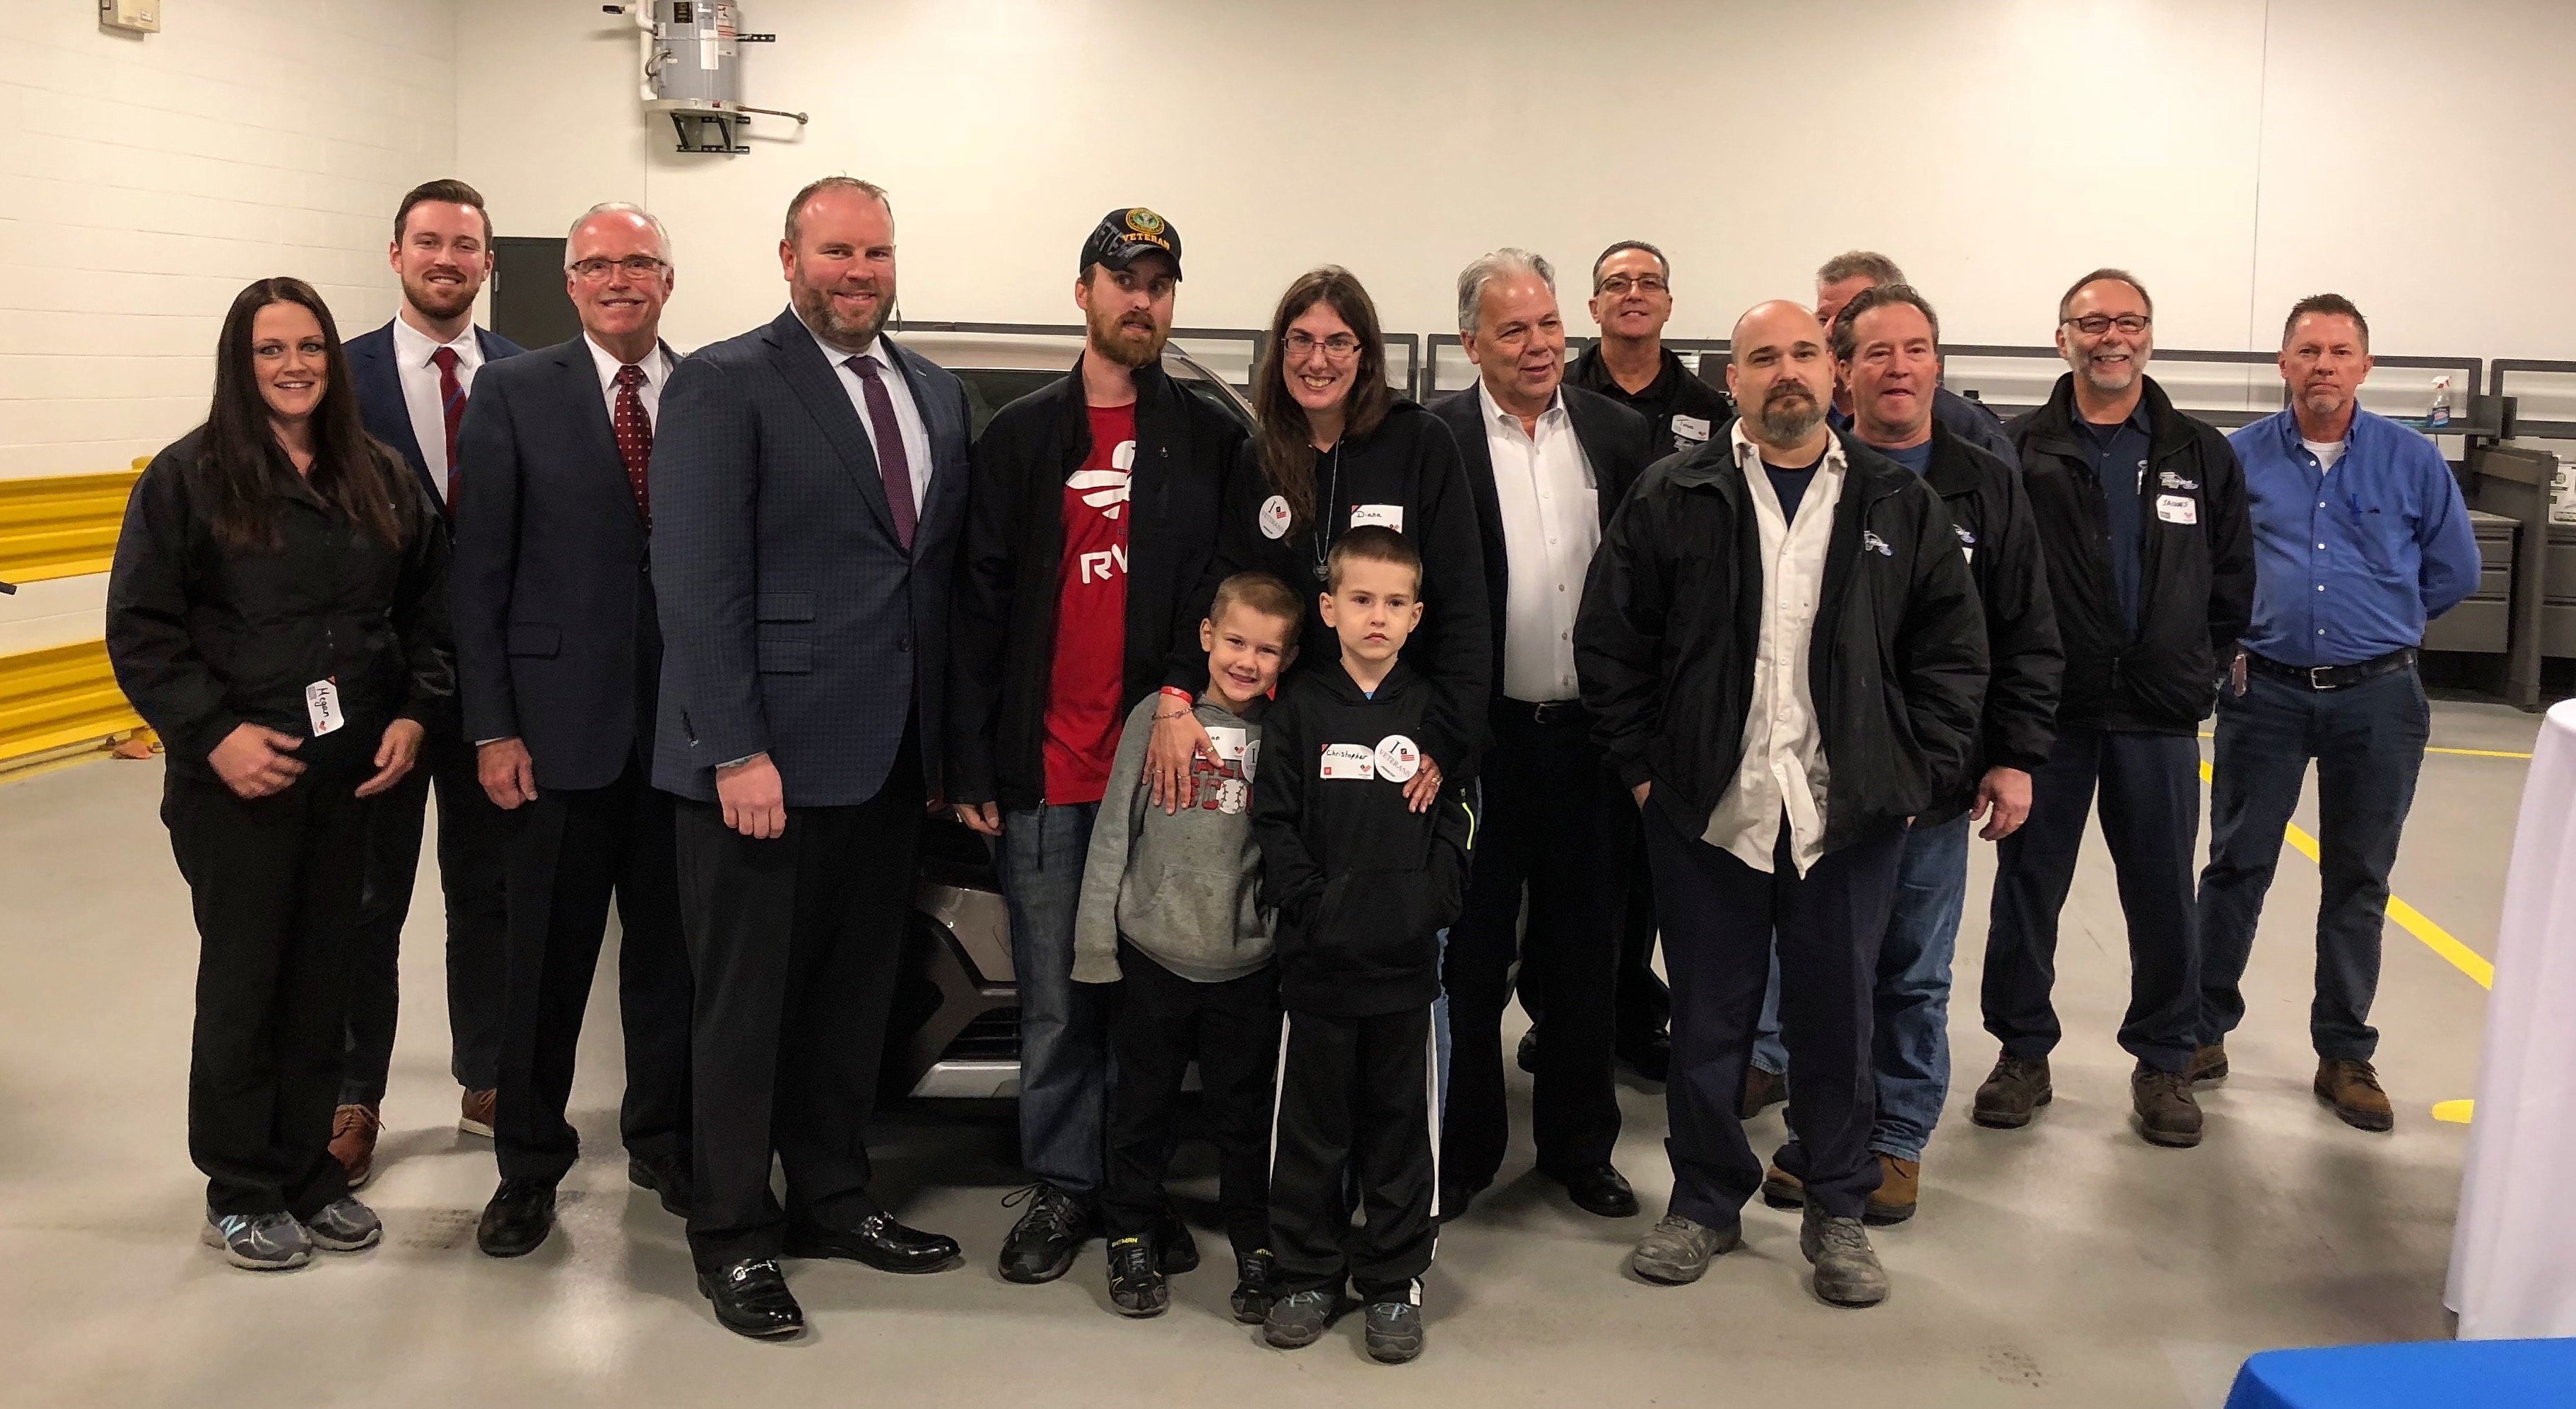 Jack Demmer Automotive Group Donates Vehicle to Veteran